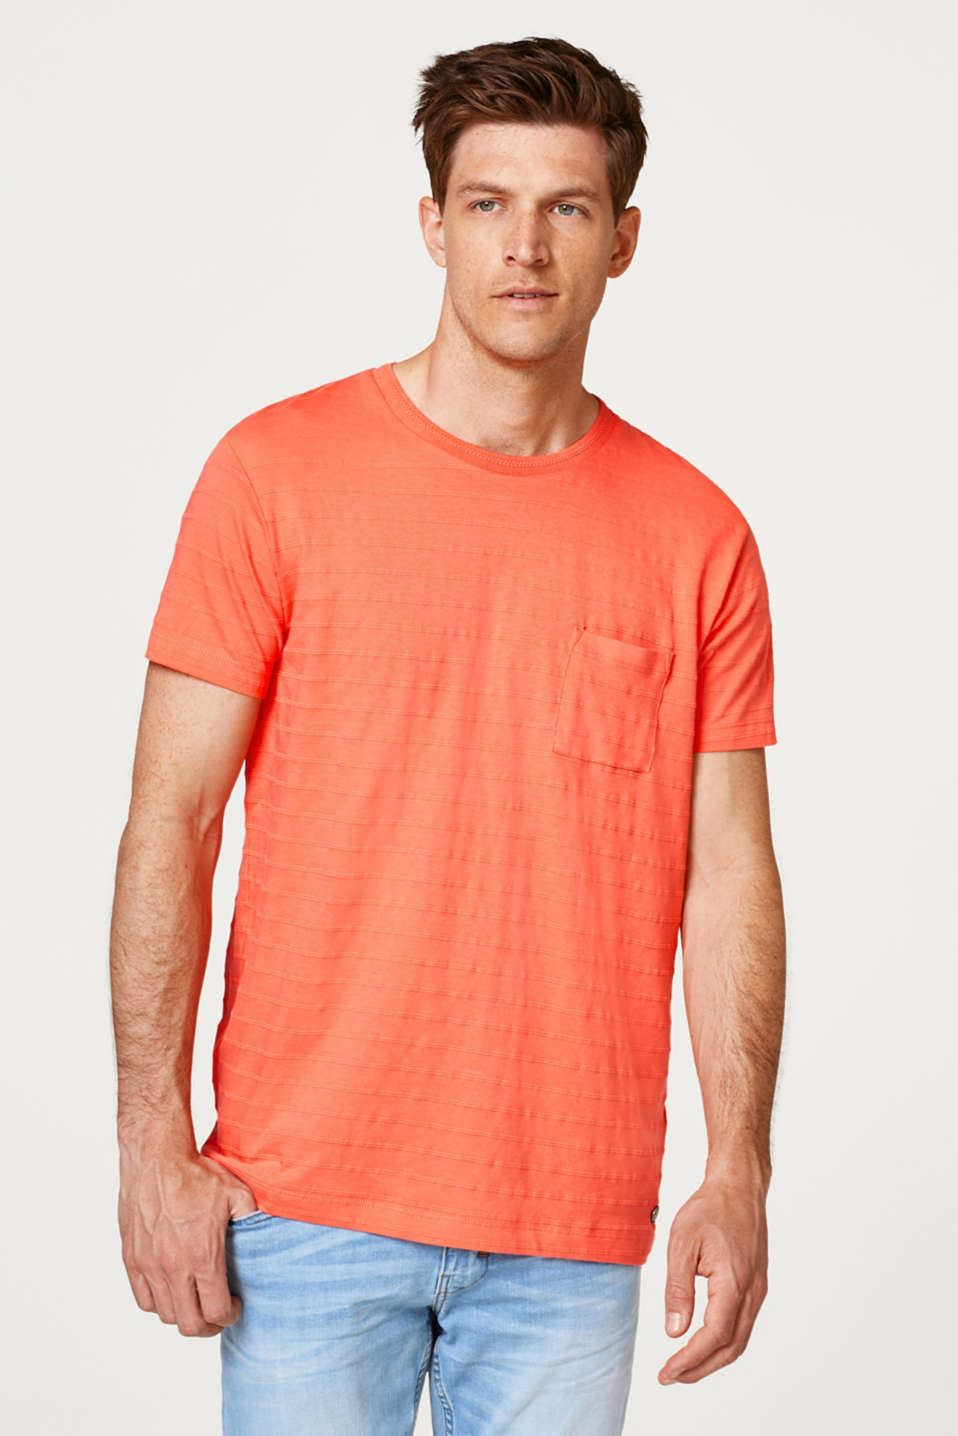 Esprit - 100% cotton-jersey tee with textured stripes